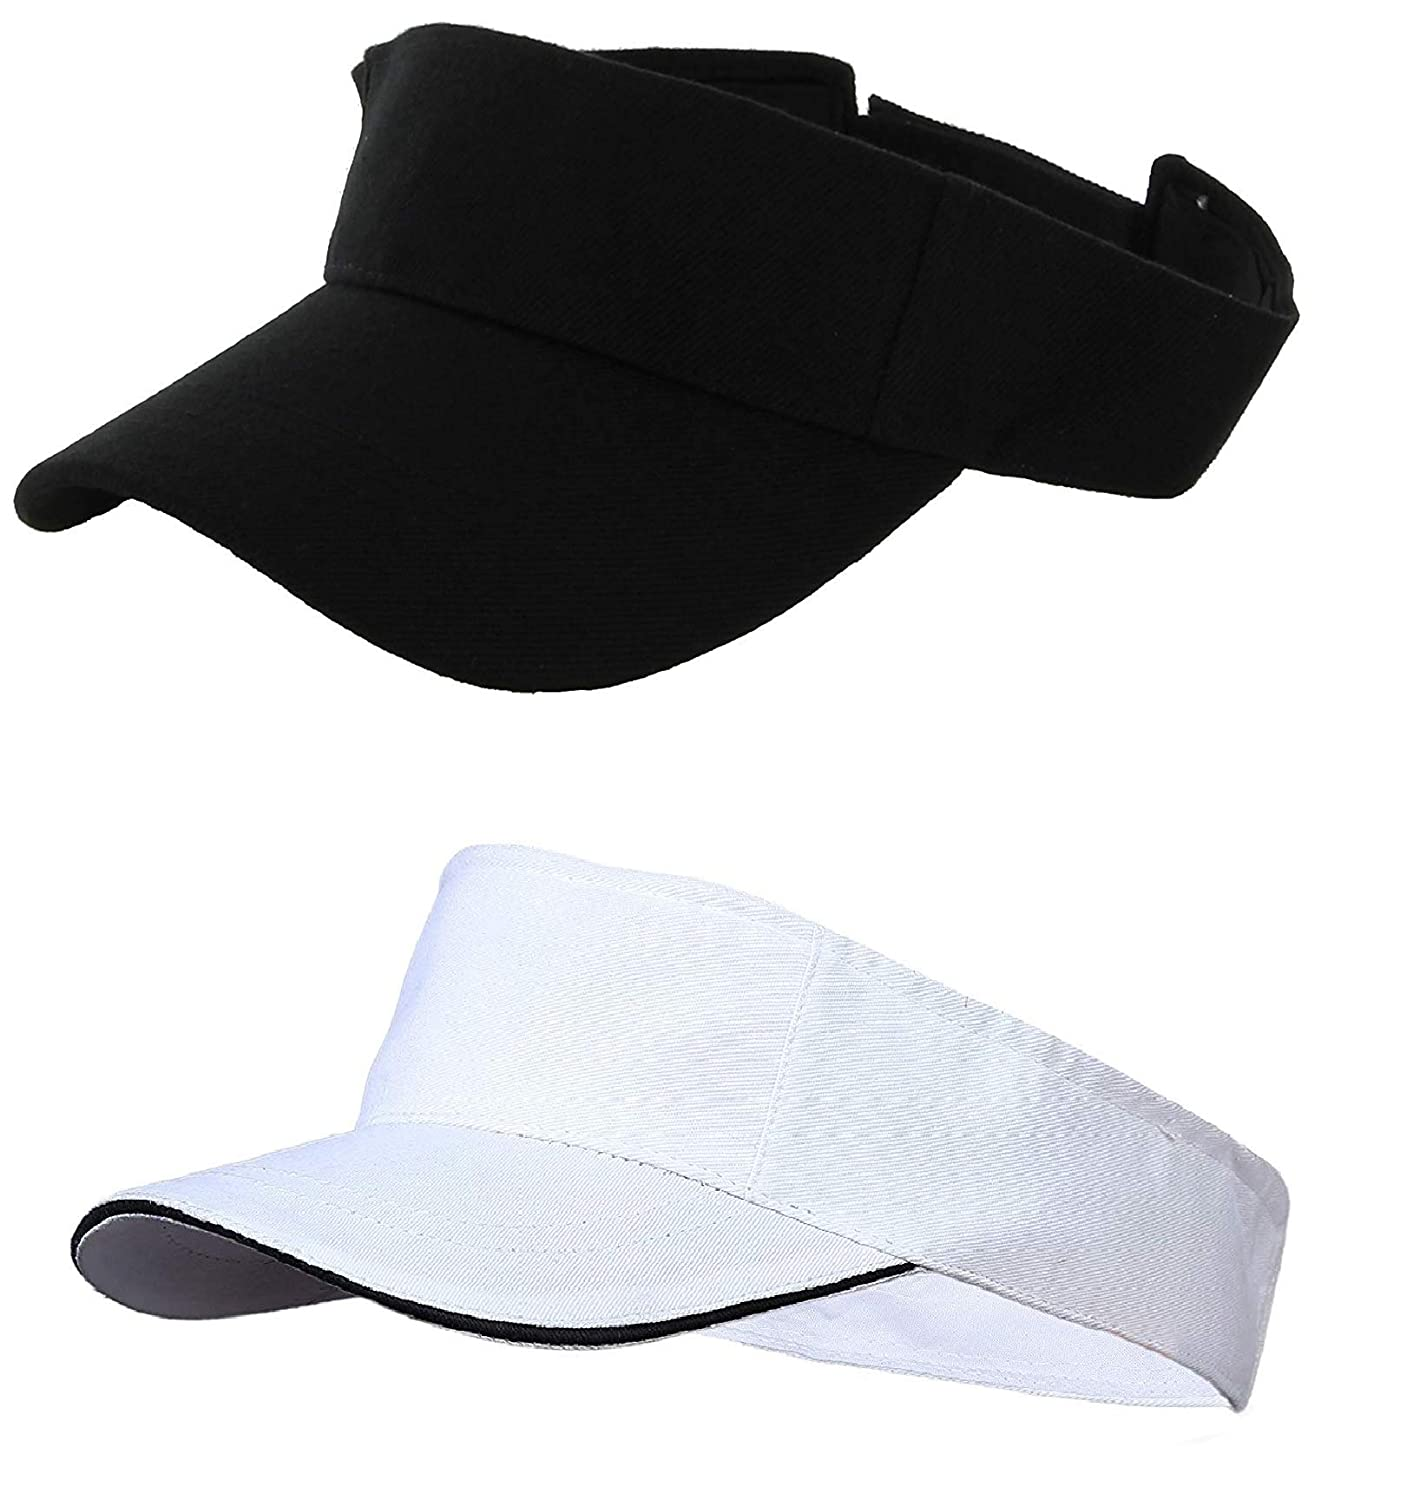 5db0617b Magic Attitude Women's Tennis Visor Sunshade Cap Pack of 2 Black & White:  Amazon.in: Clothing & Accessories